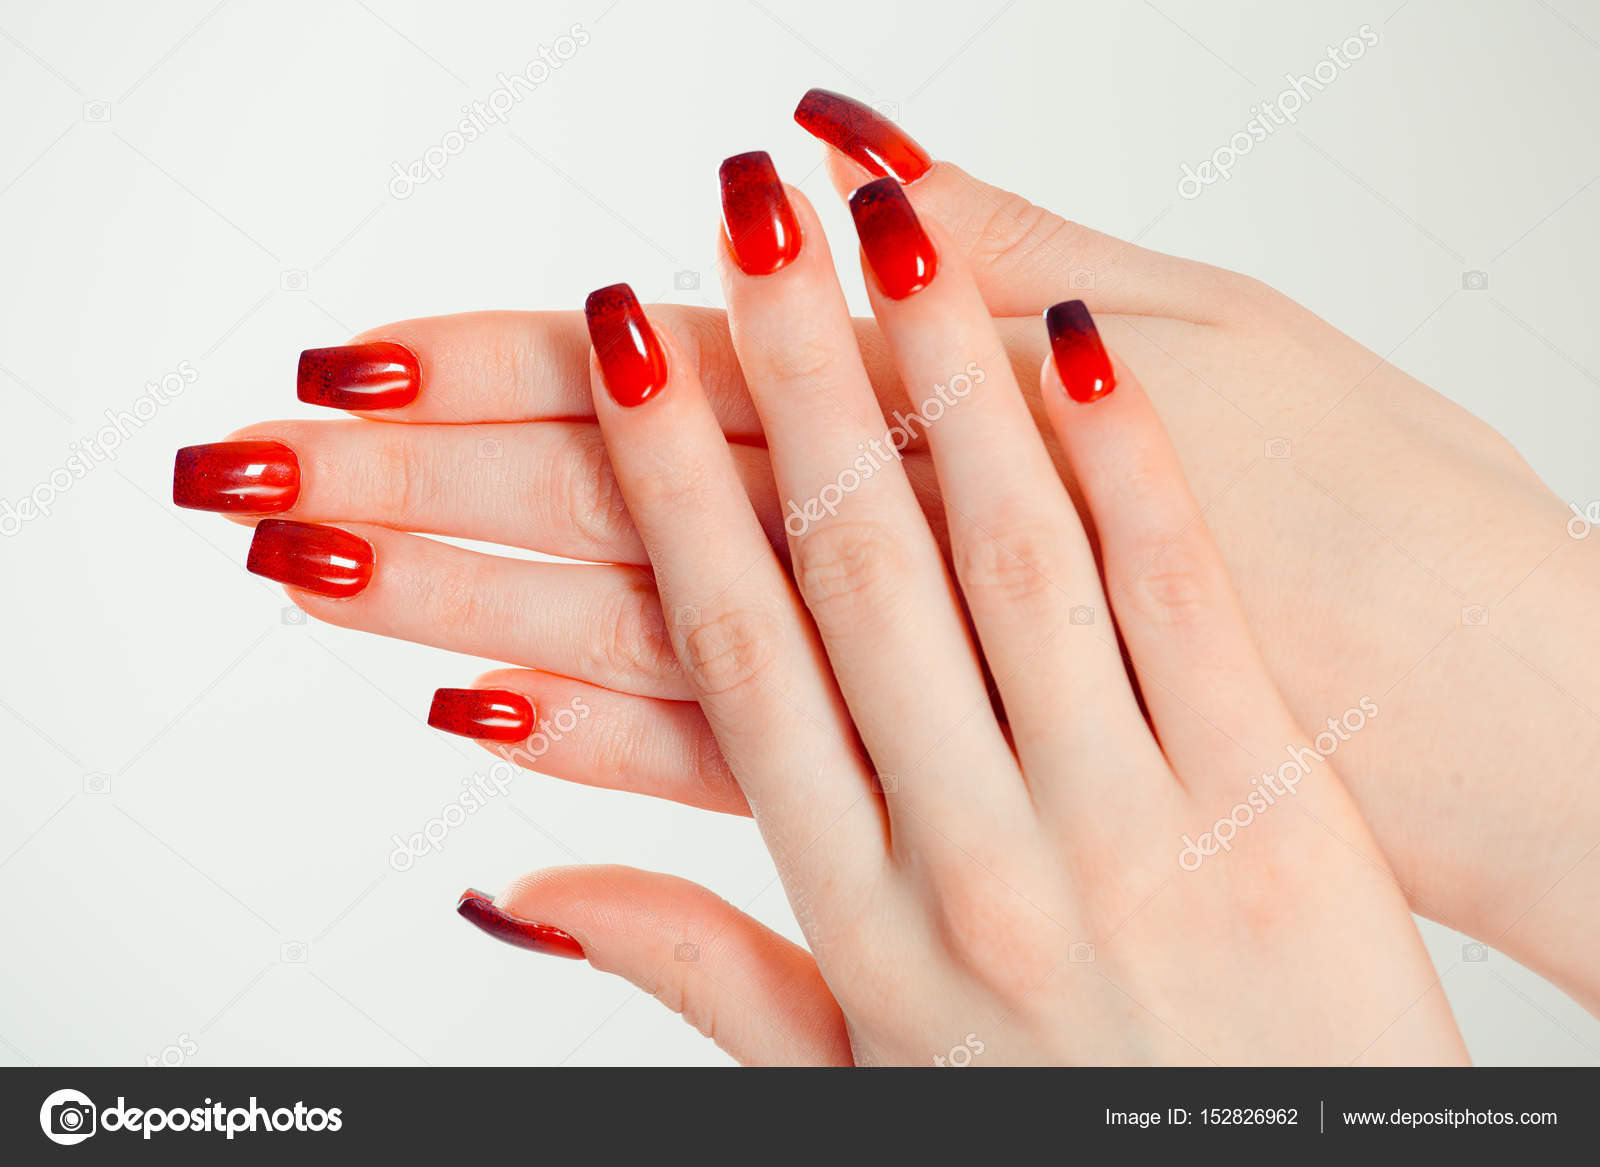 Nail Polish Art Manicure Modern Style Red Black Gradient Beauty Hands